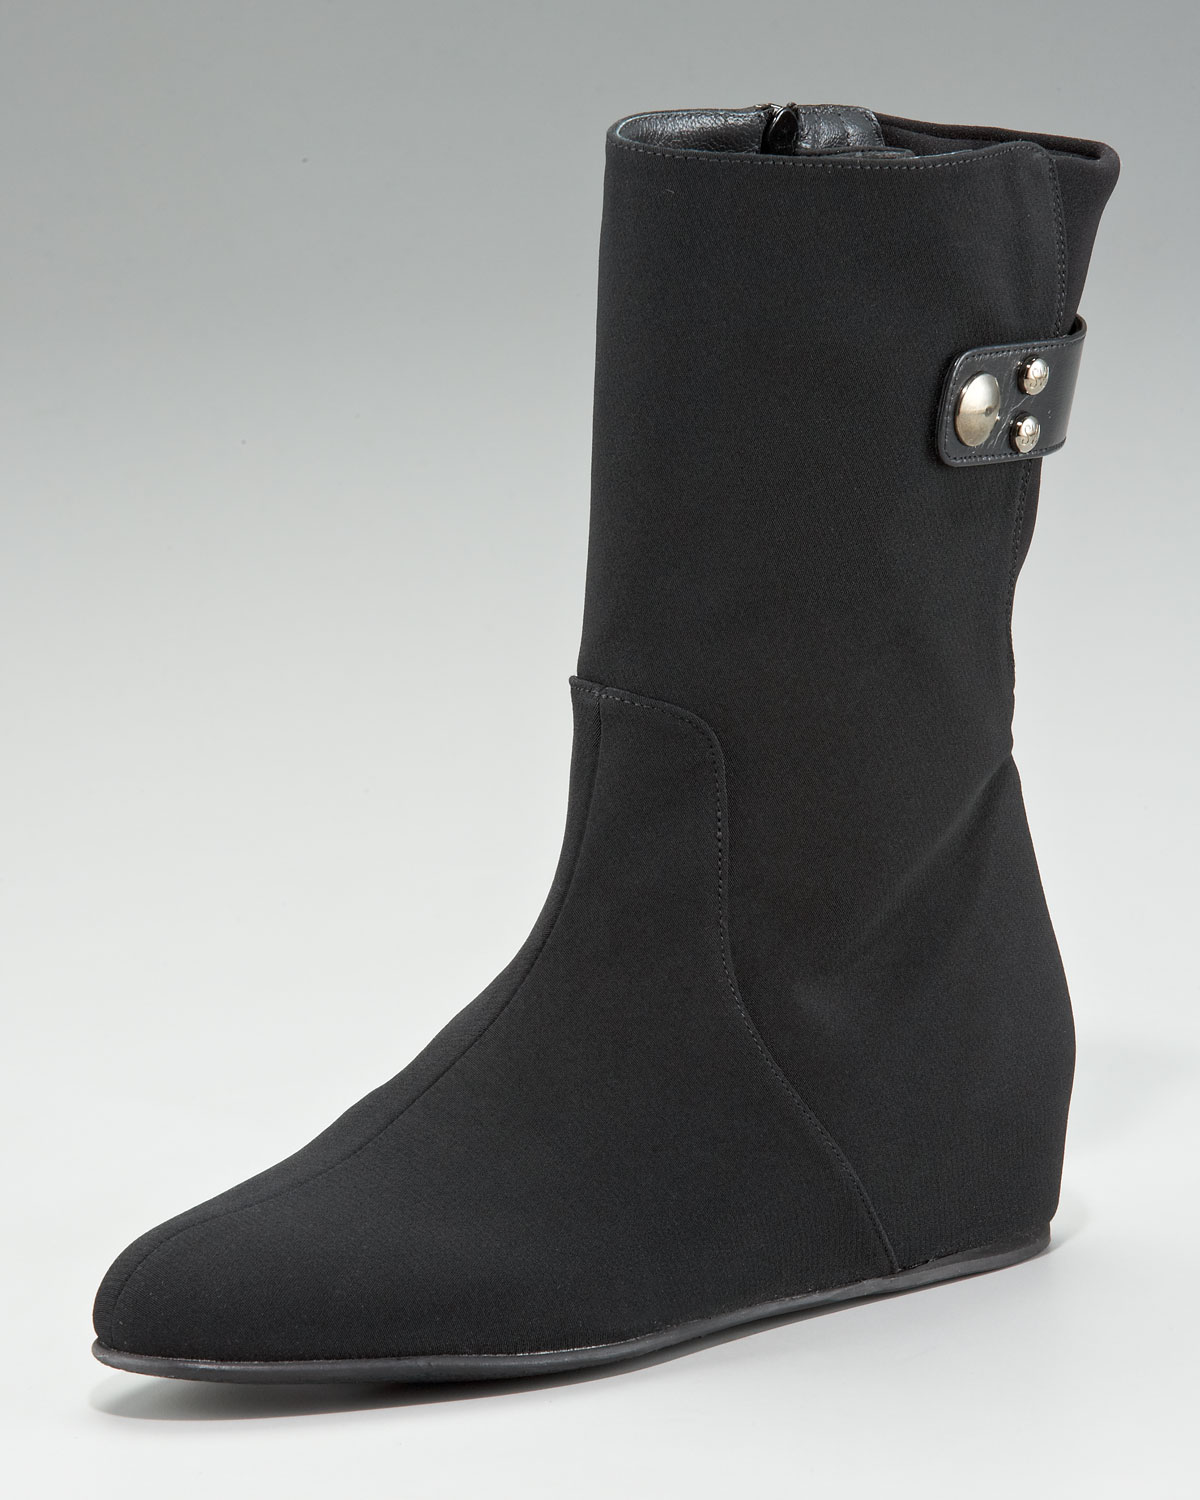 stuart weitzman gortex flat boot in black lyst